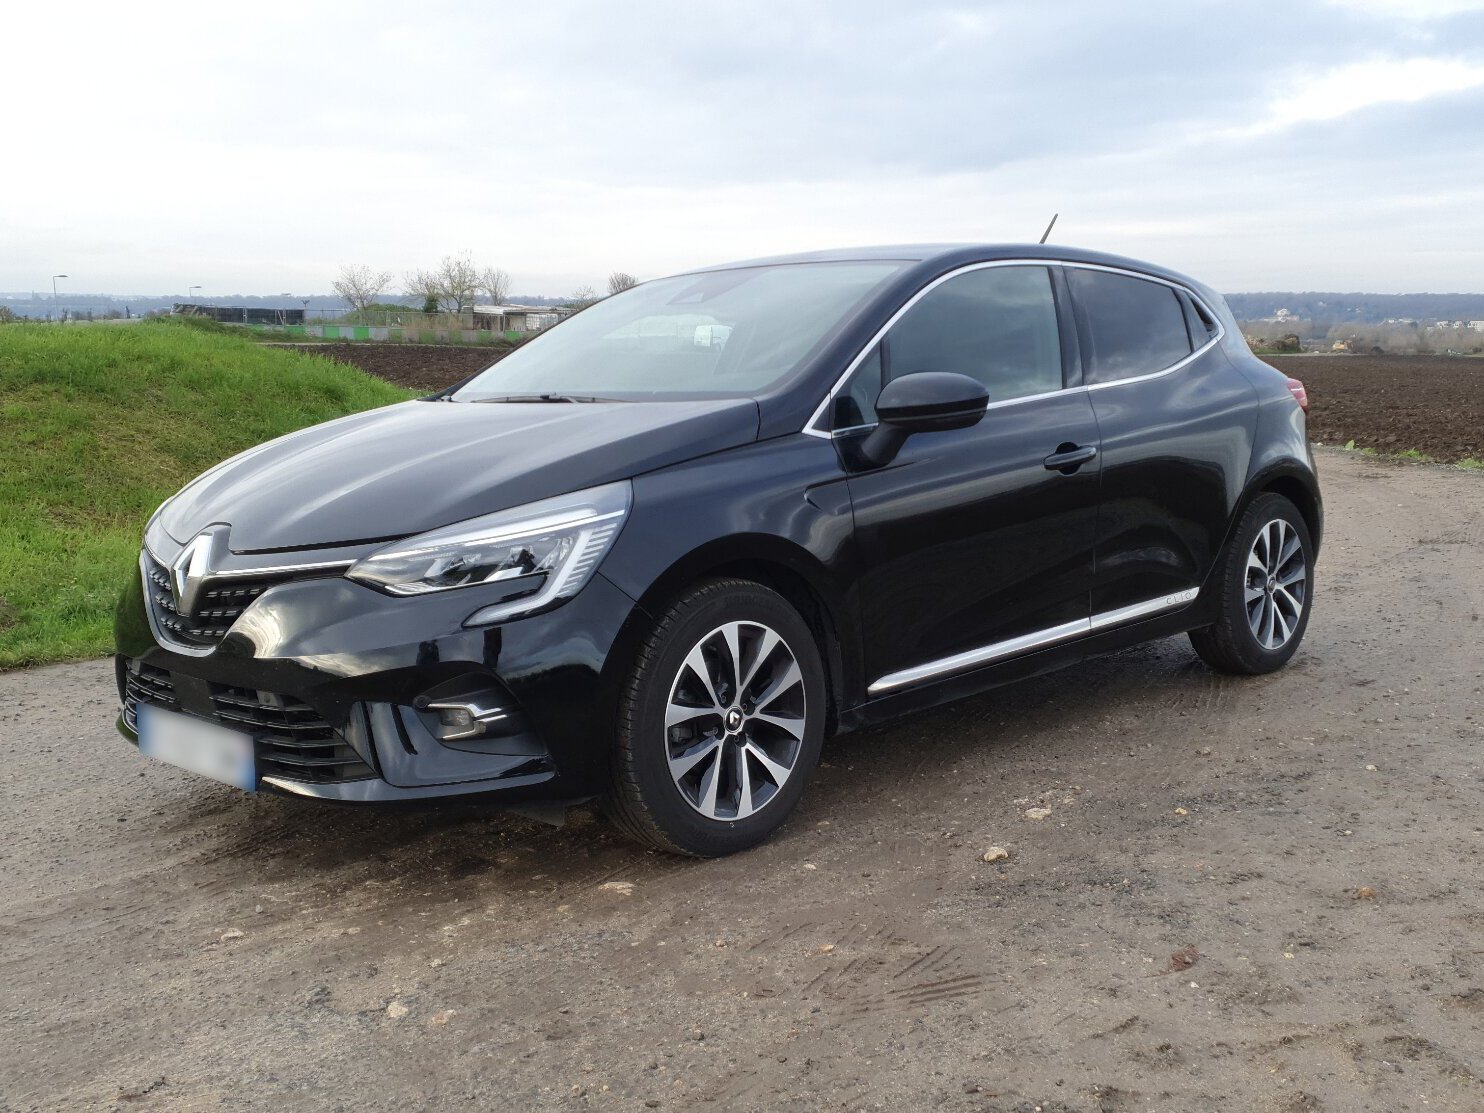 RENAULT CLIO 1.0 TCE 100 INTENS